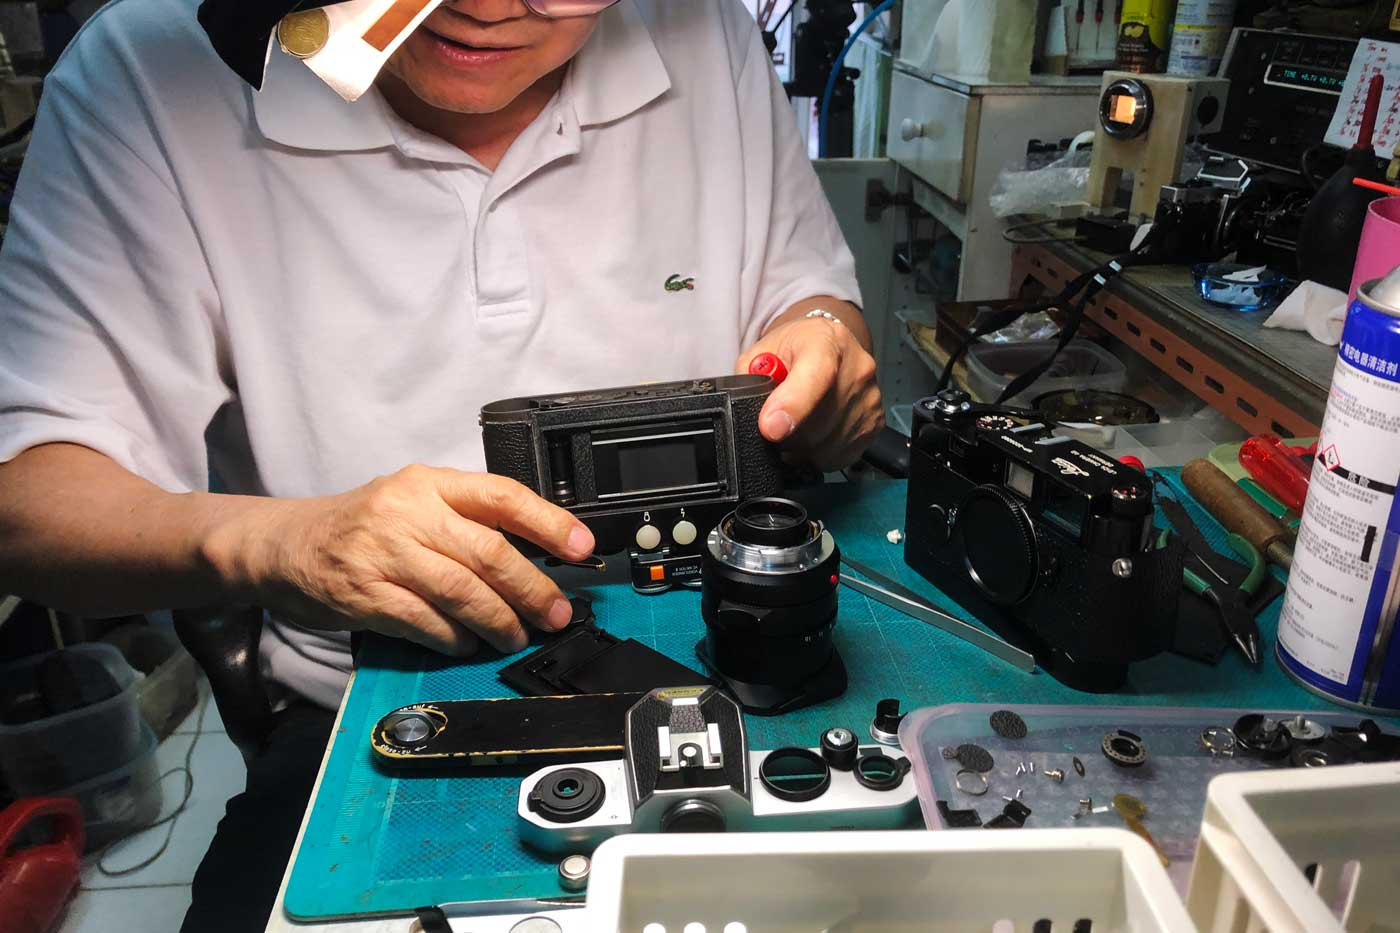 where-to-repair-vintage-camera-lenses-hong-kong-service-hk-master-yu-raymond-leica-repairer-repairman-rangefinder-summilux-coupling-calibration-CLA